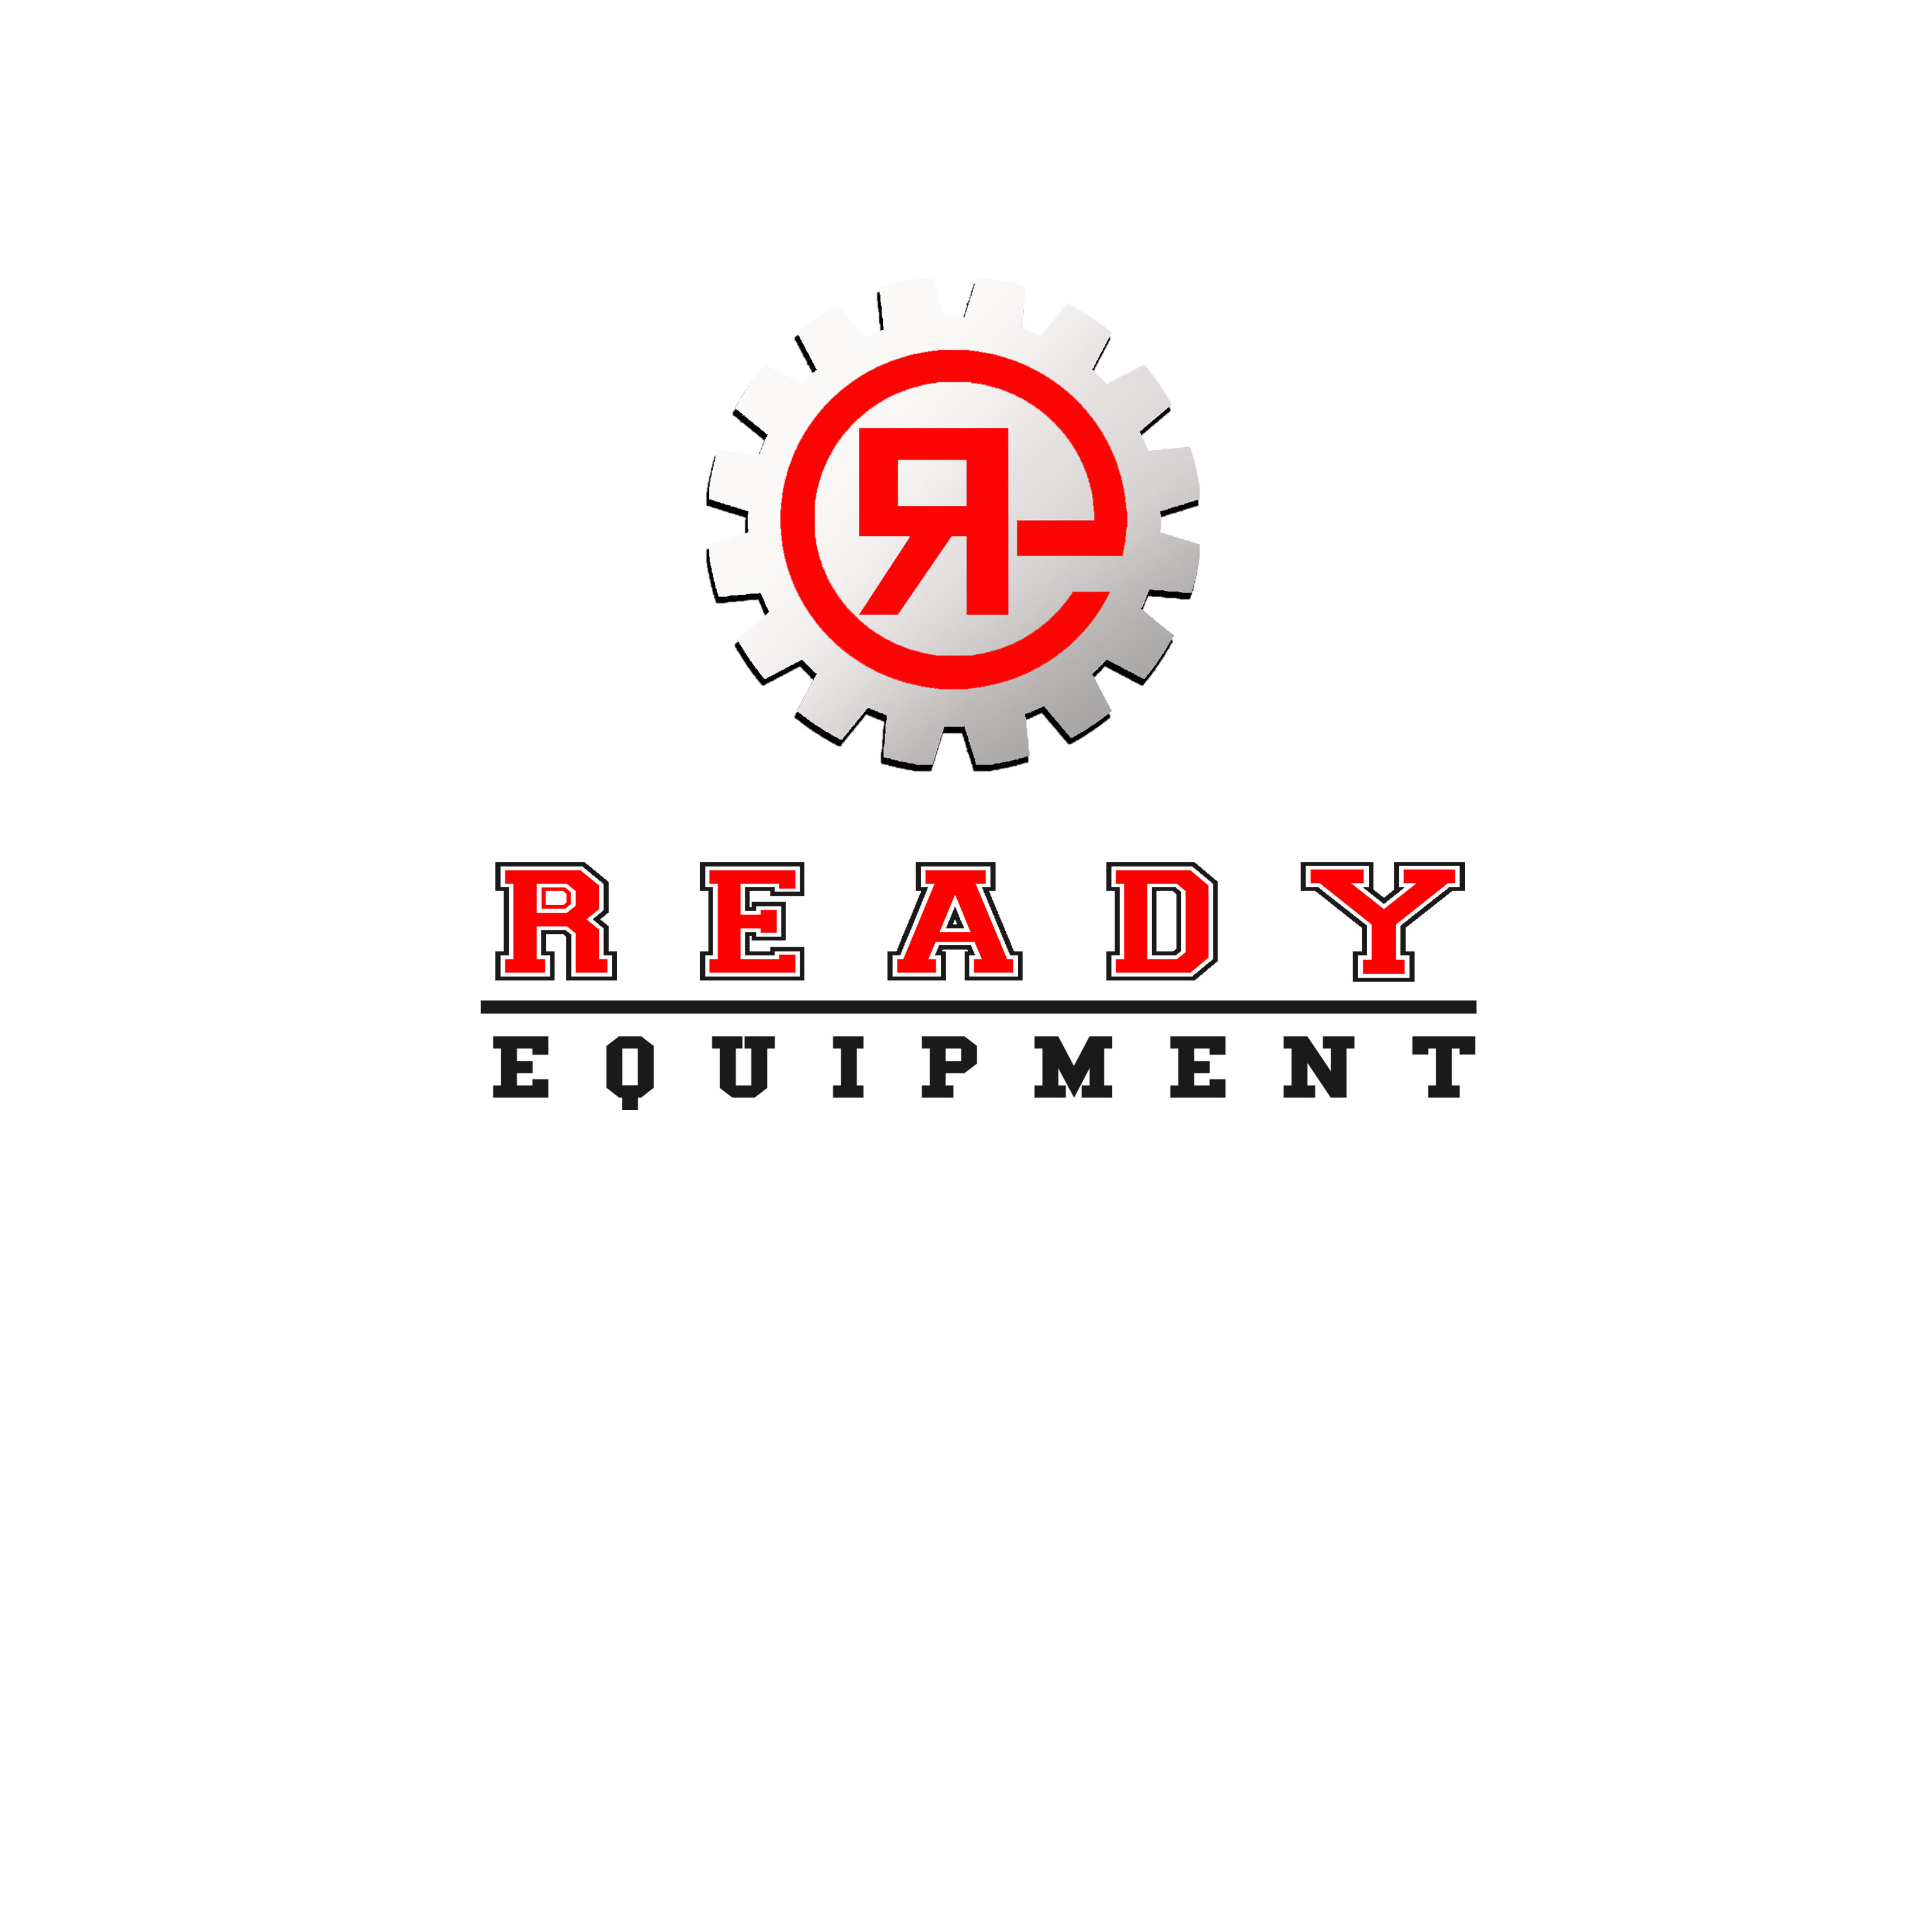 Logo Design by Allan Esclamado - Entry No. 149 in the Logo Design Contest Ready Equipment  Logo Design.